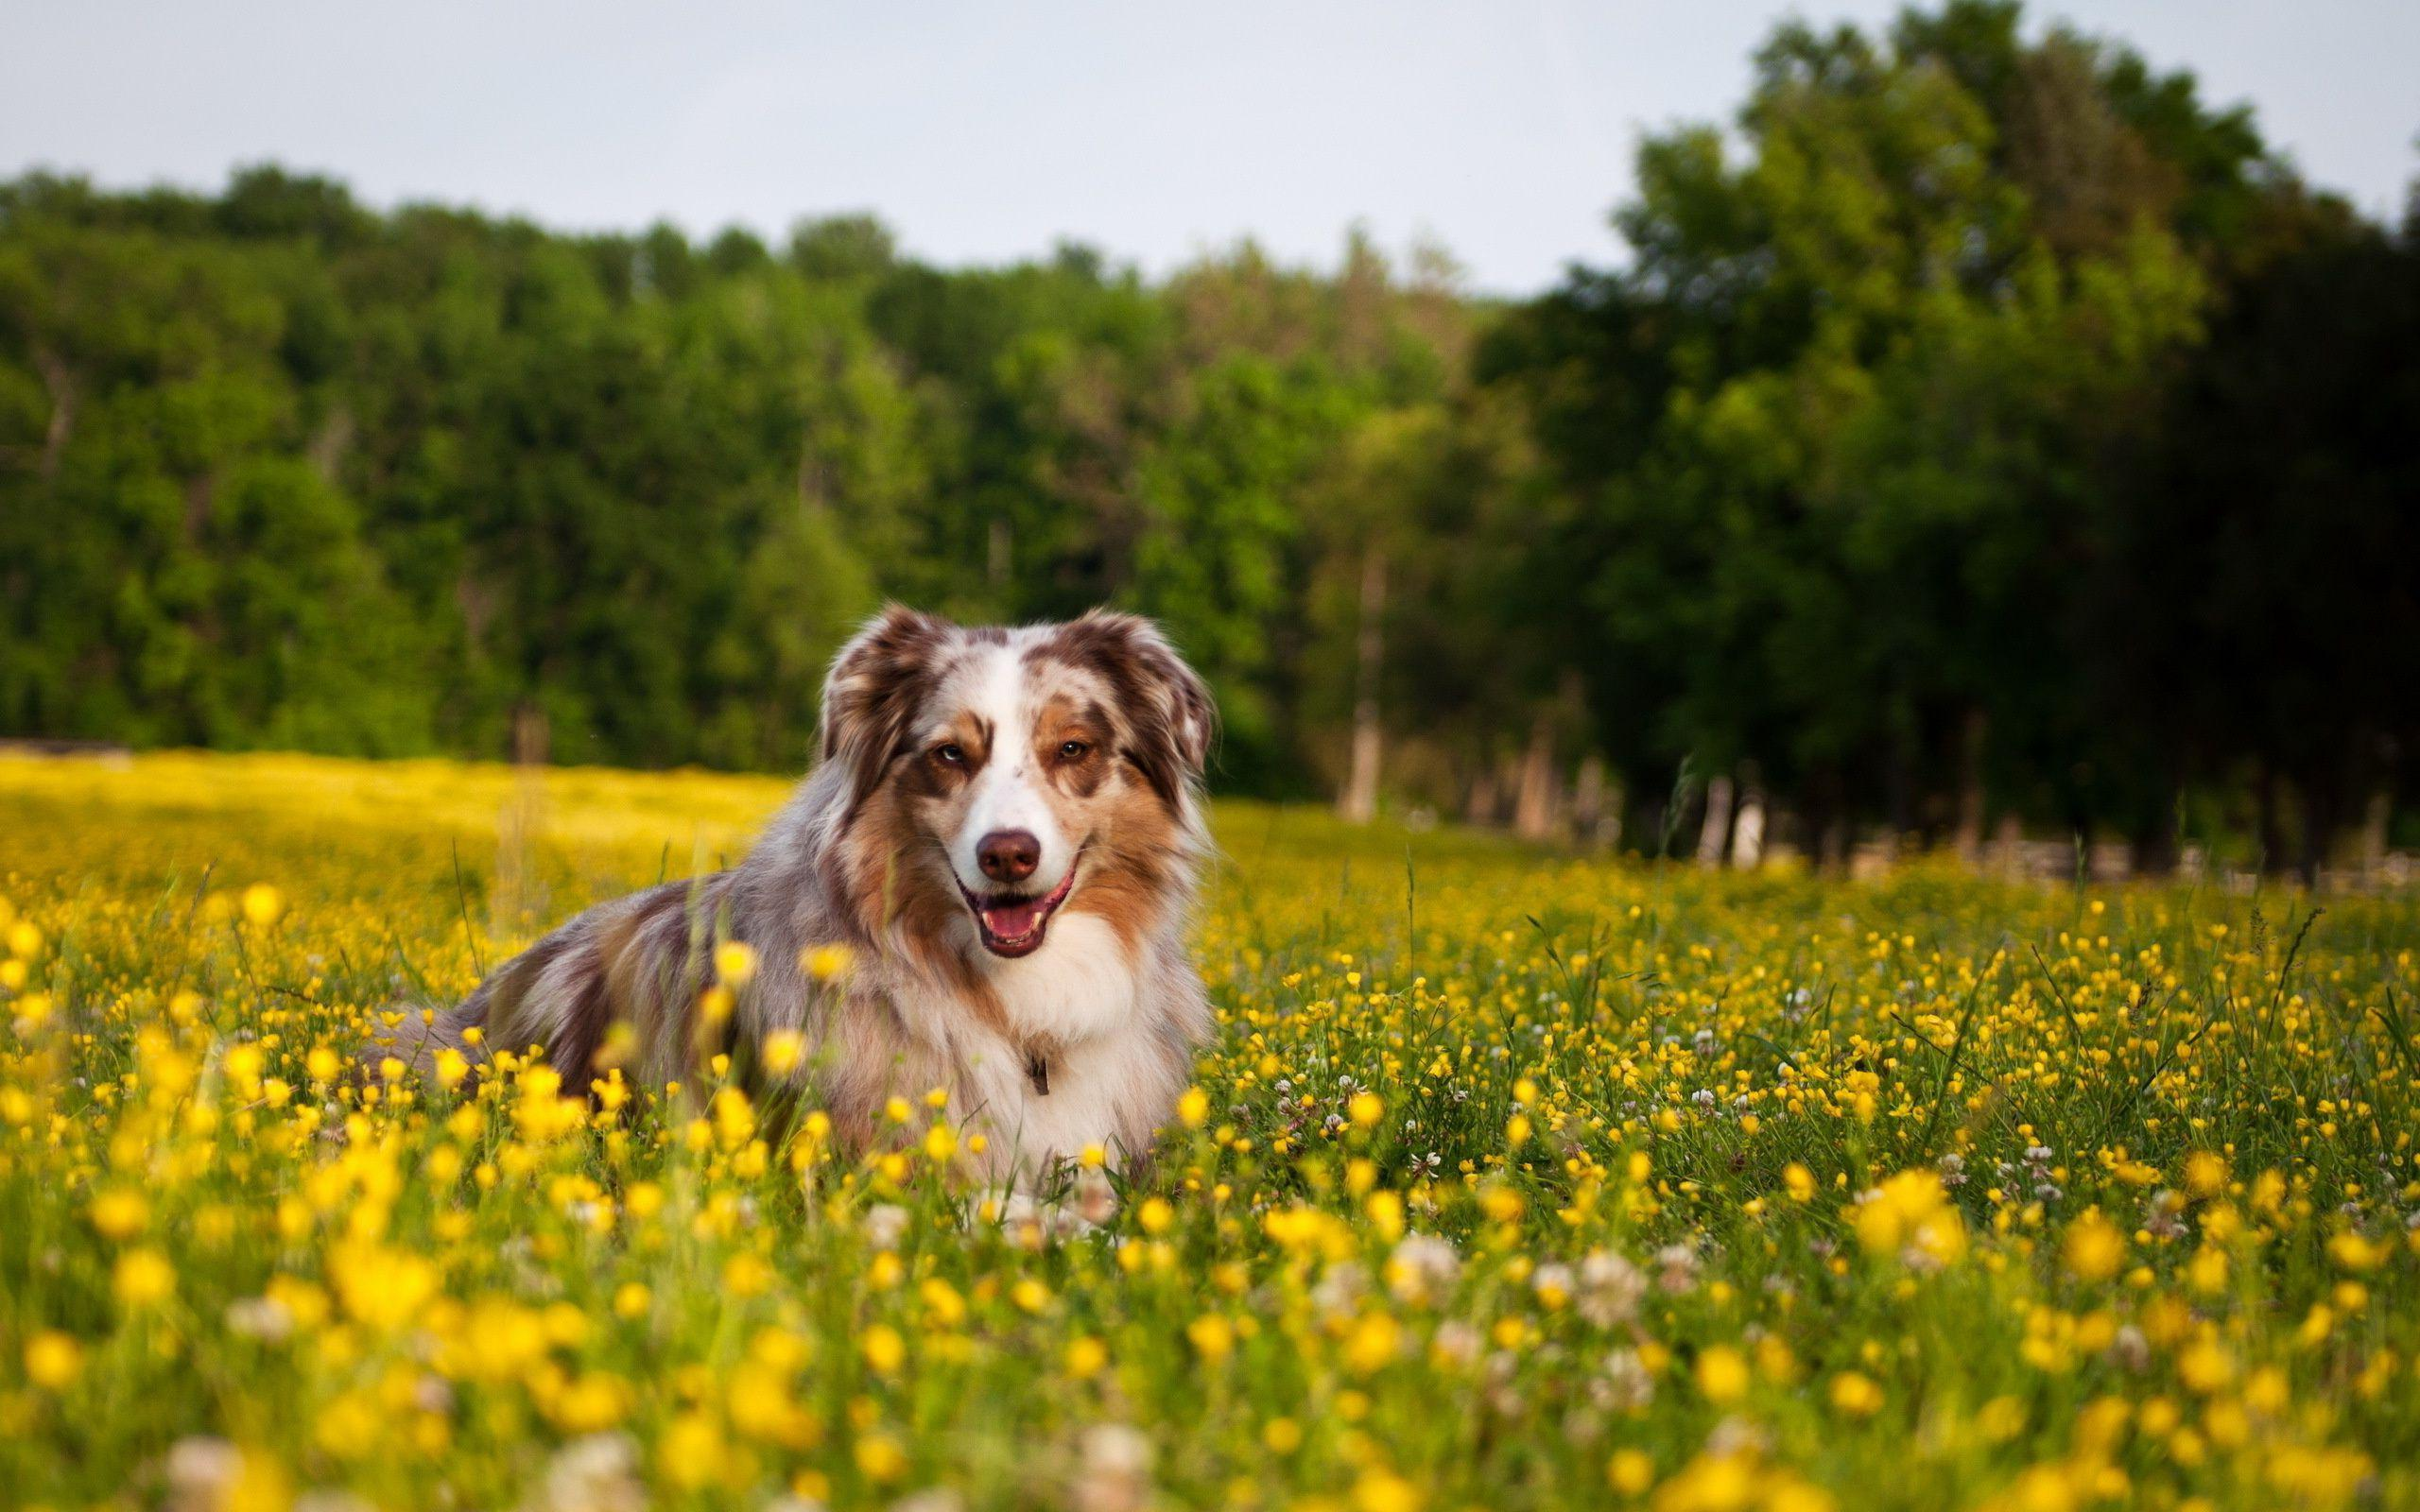 Hd Dog Wallpapers Free